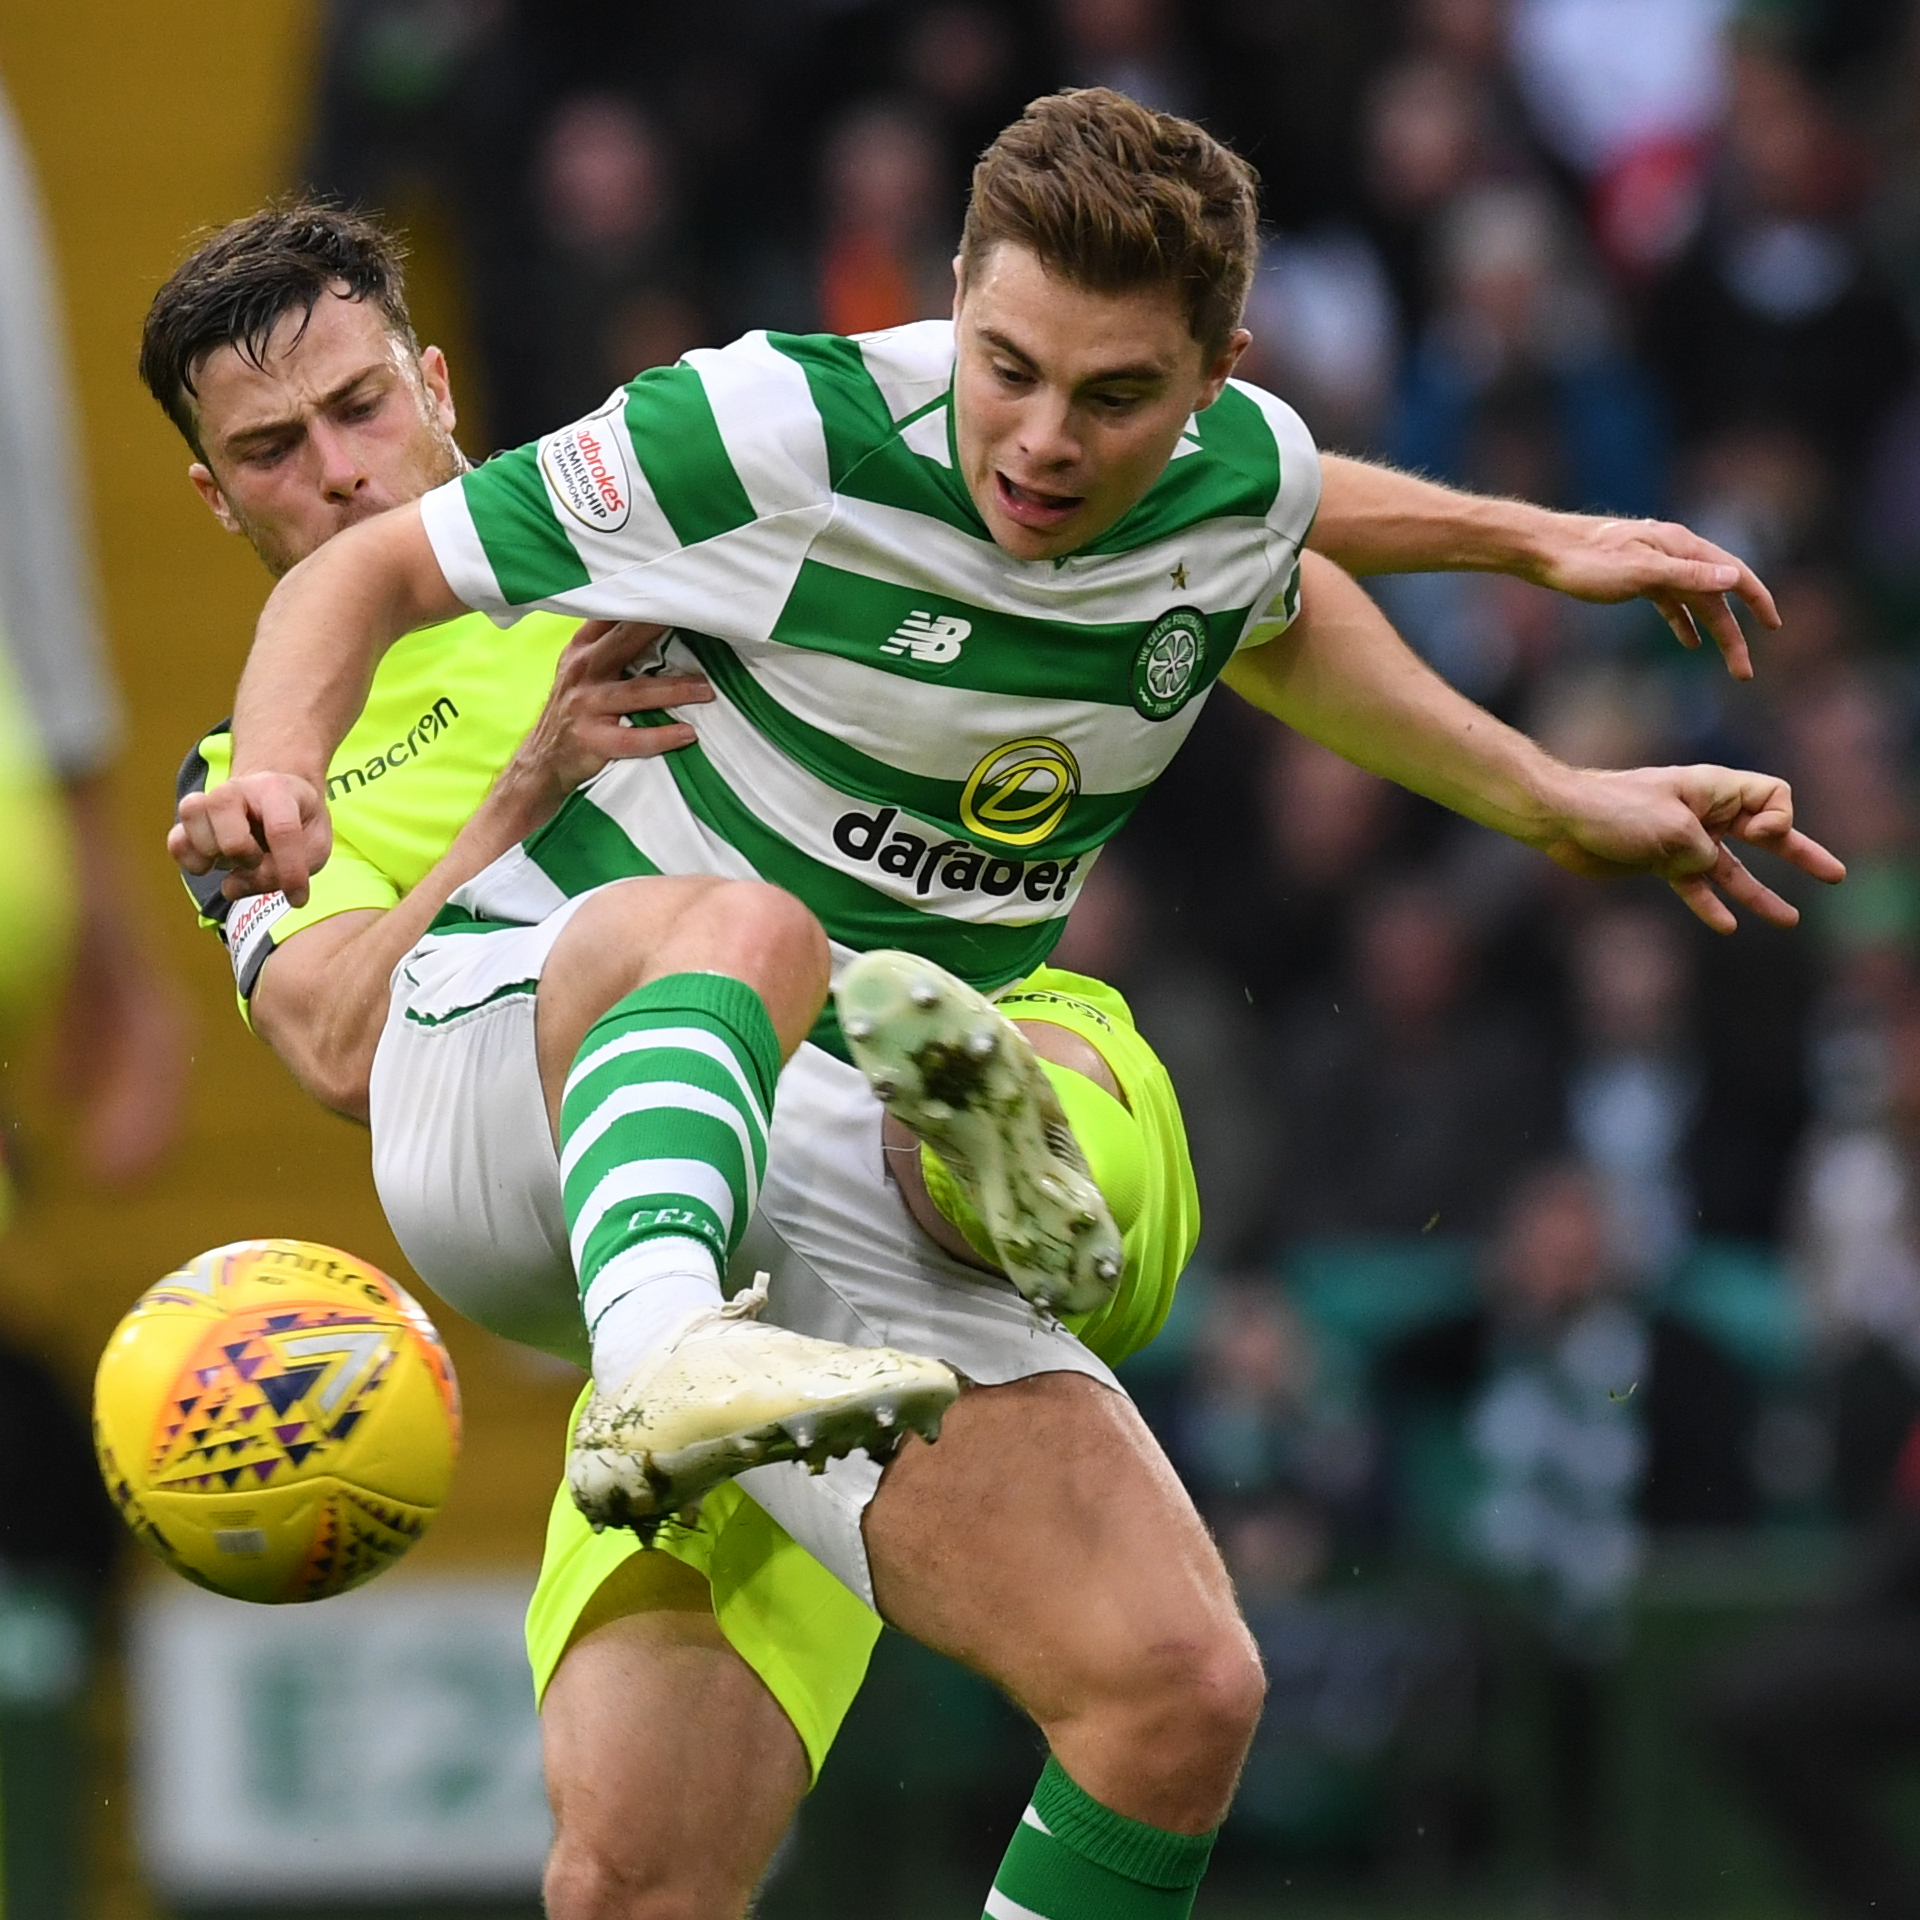 Celtic's James Forrest (right) holds off Lewis Stevenson during their last encounter in October